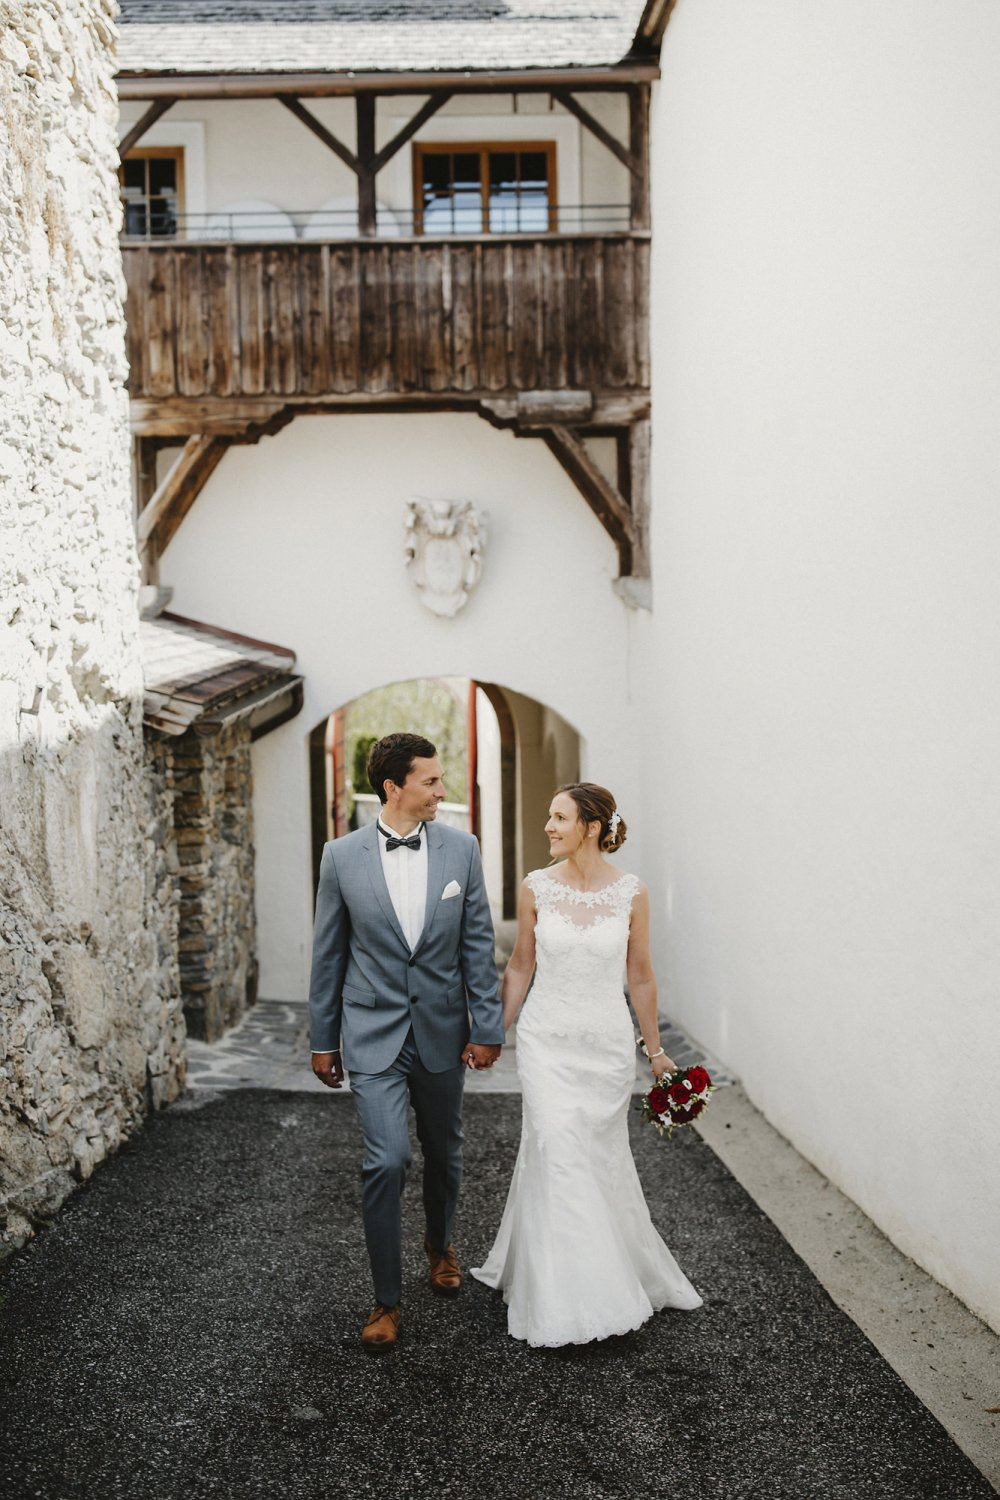 Castle wedding Austria Alps Schloss Mittersill couple walking